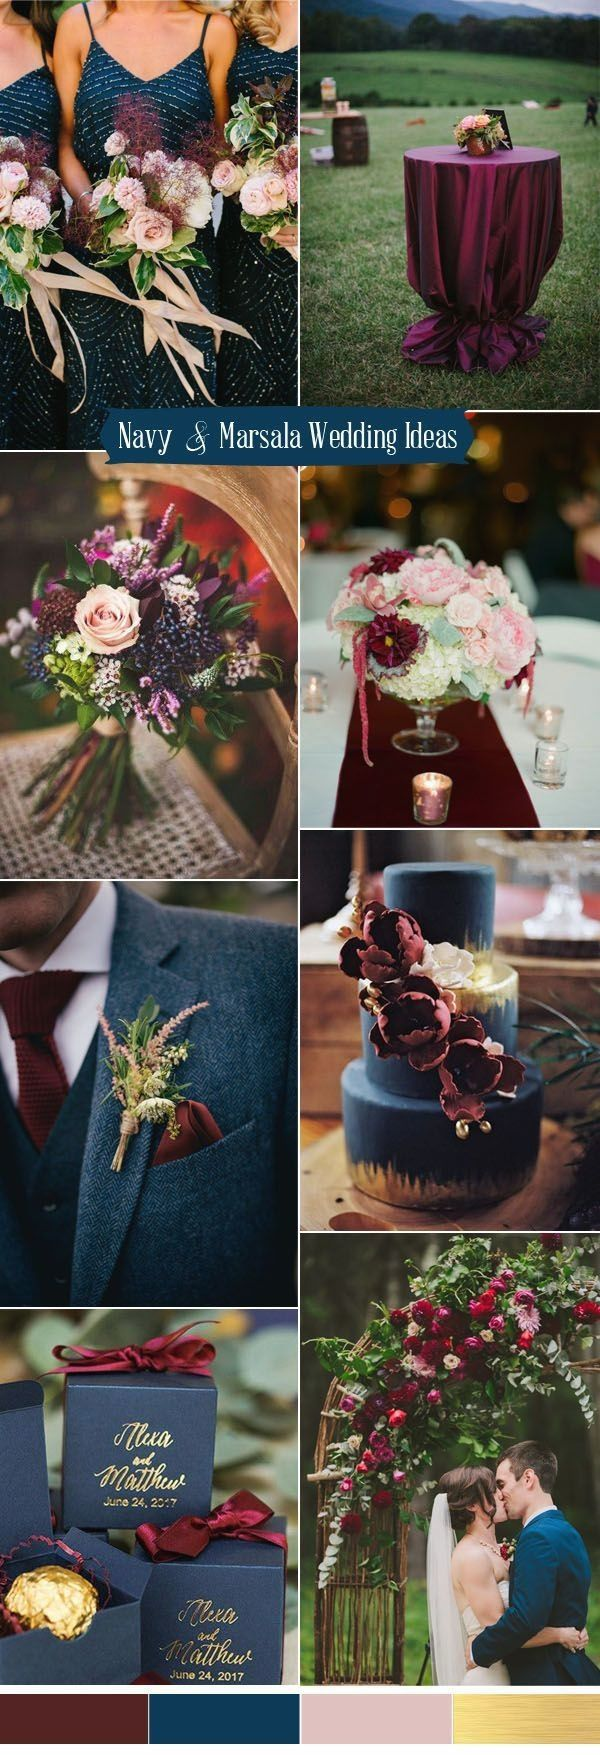 Wedding venue decorations ideas november 2018  Wedding Venues to Use as Inspiration  A girl can dream